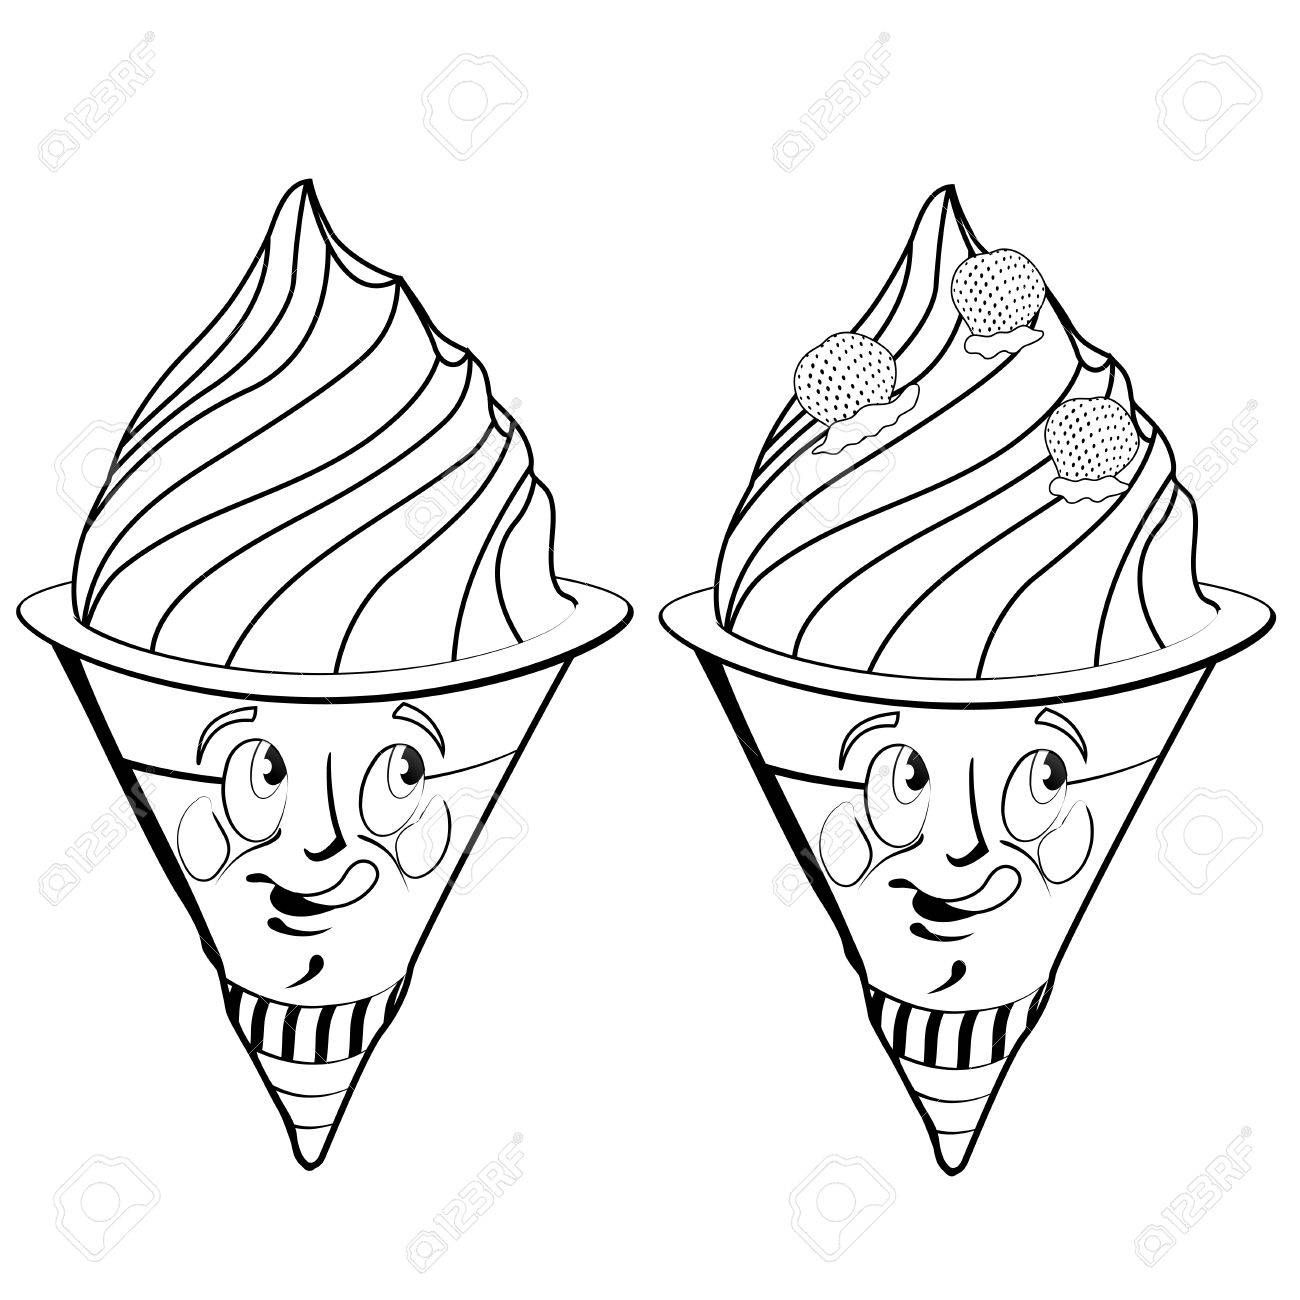 1300x1300 Strawberry Ice Cream Cartoon Drawing Style Black On White Royalty